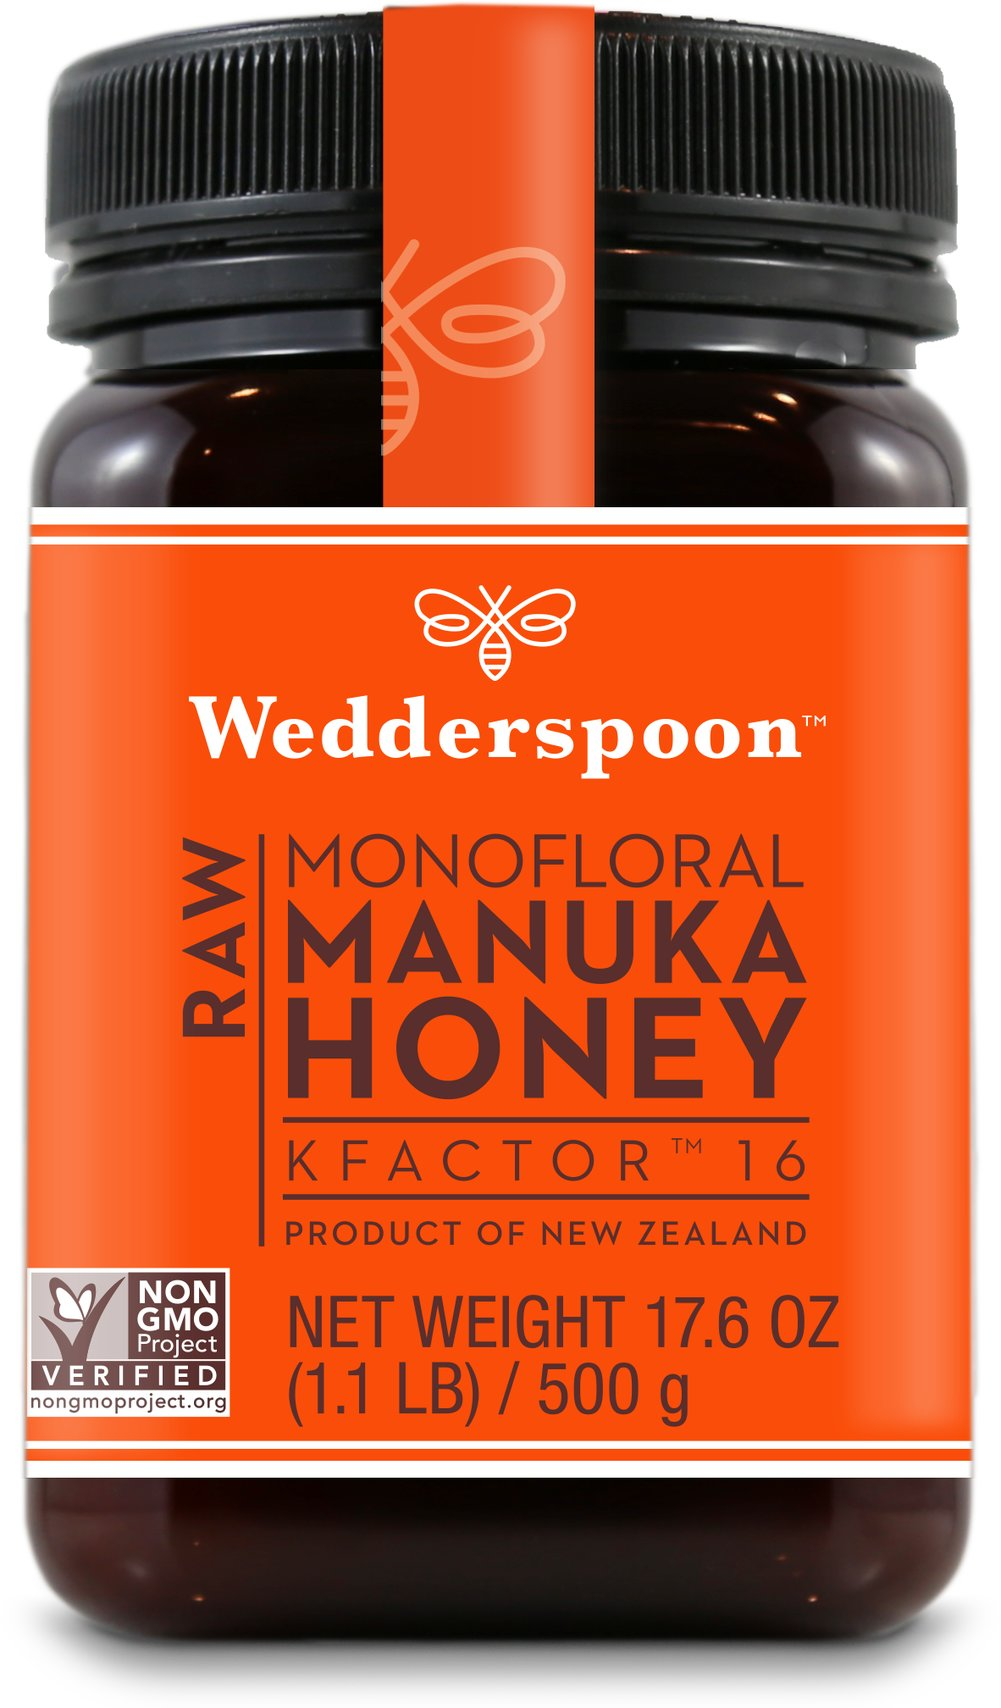 100% Raw Premium Manuka Honey Active 16+ <p><strong>From the Manufacturer's Label:</strong></p><p><strong></strong>Wedderspoon's Raw Manuka Honey is sourced from the remote pristine areas of New Zealand's South Island. This honey is the finest in natural products. Smooth, creamy, and unpasteurized.<br /></p> 17.6 oz Jar  $39.99